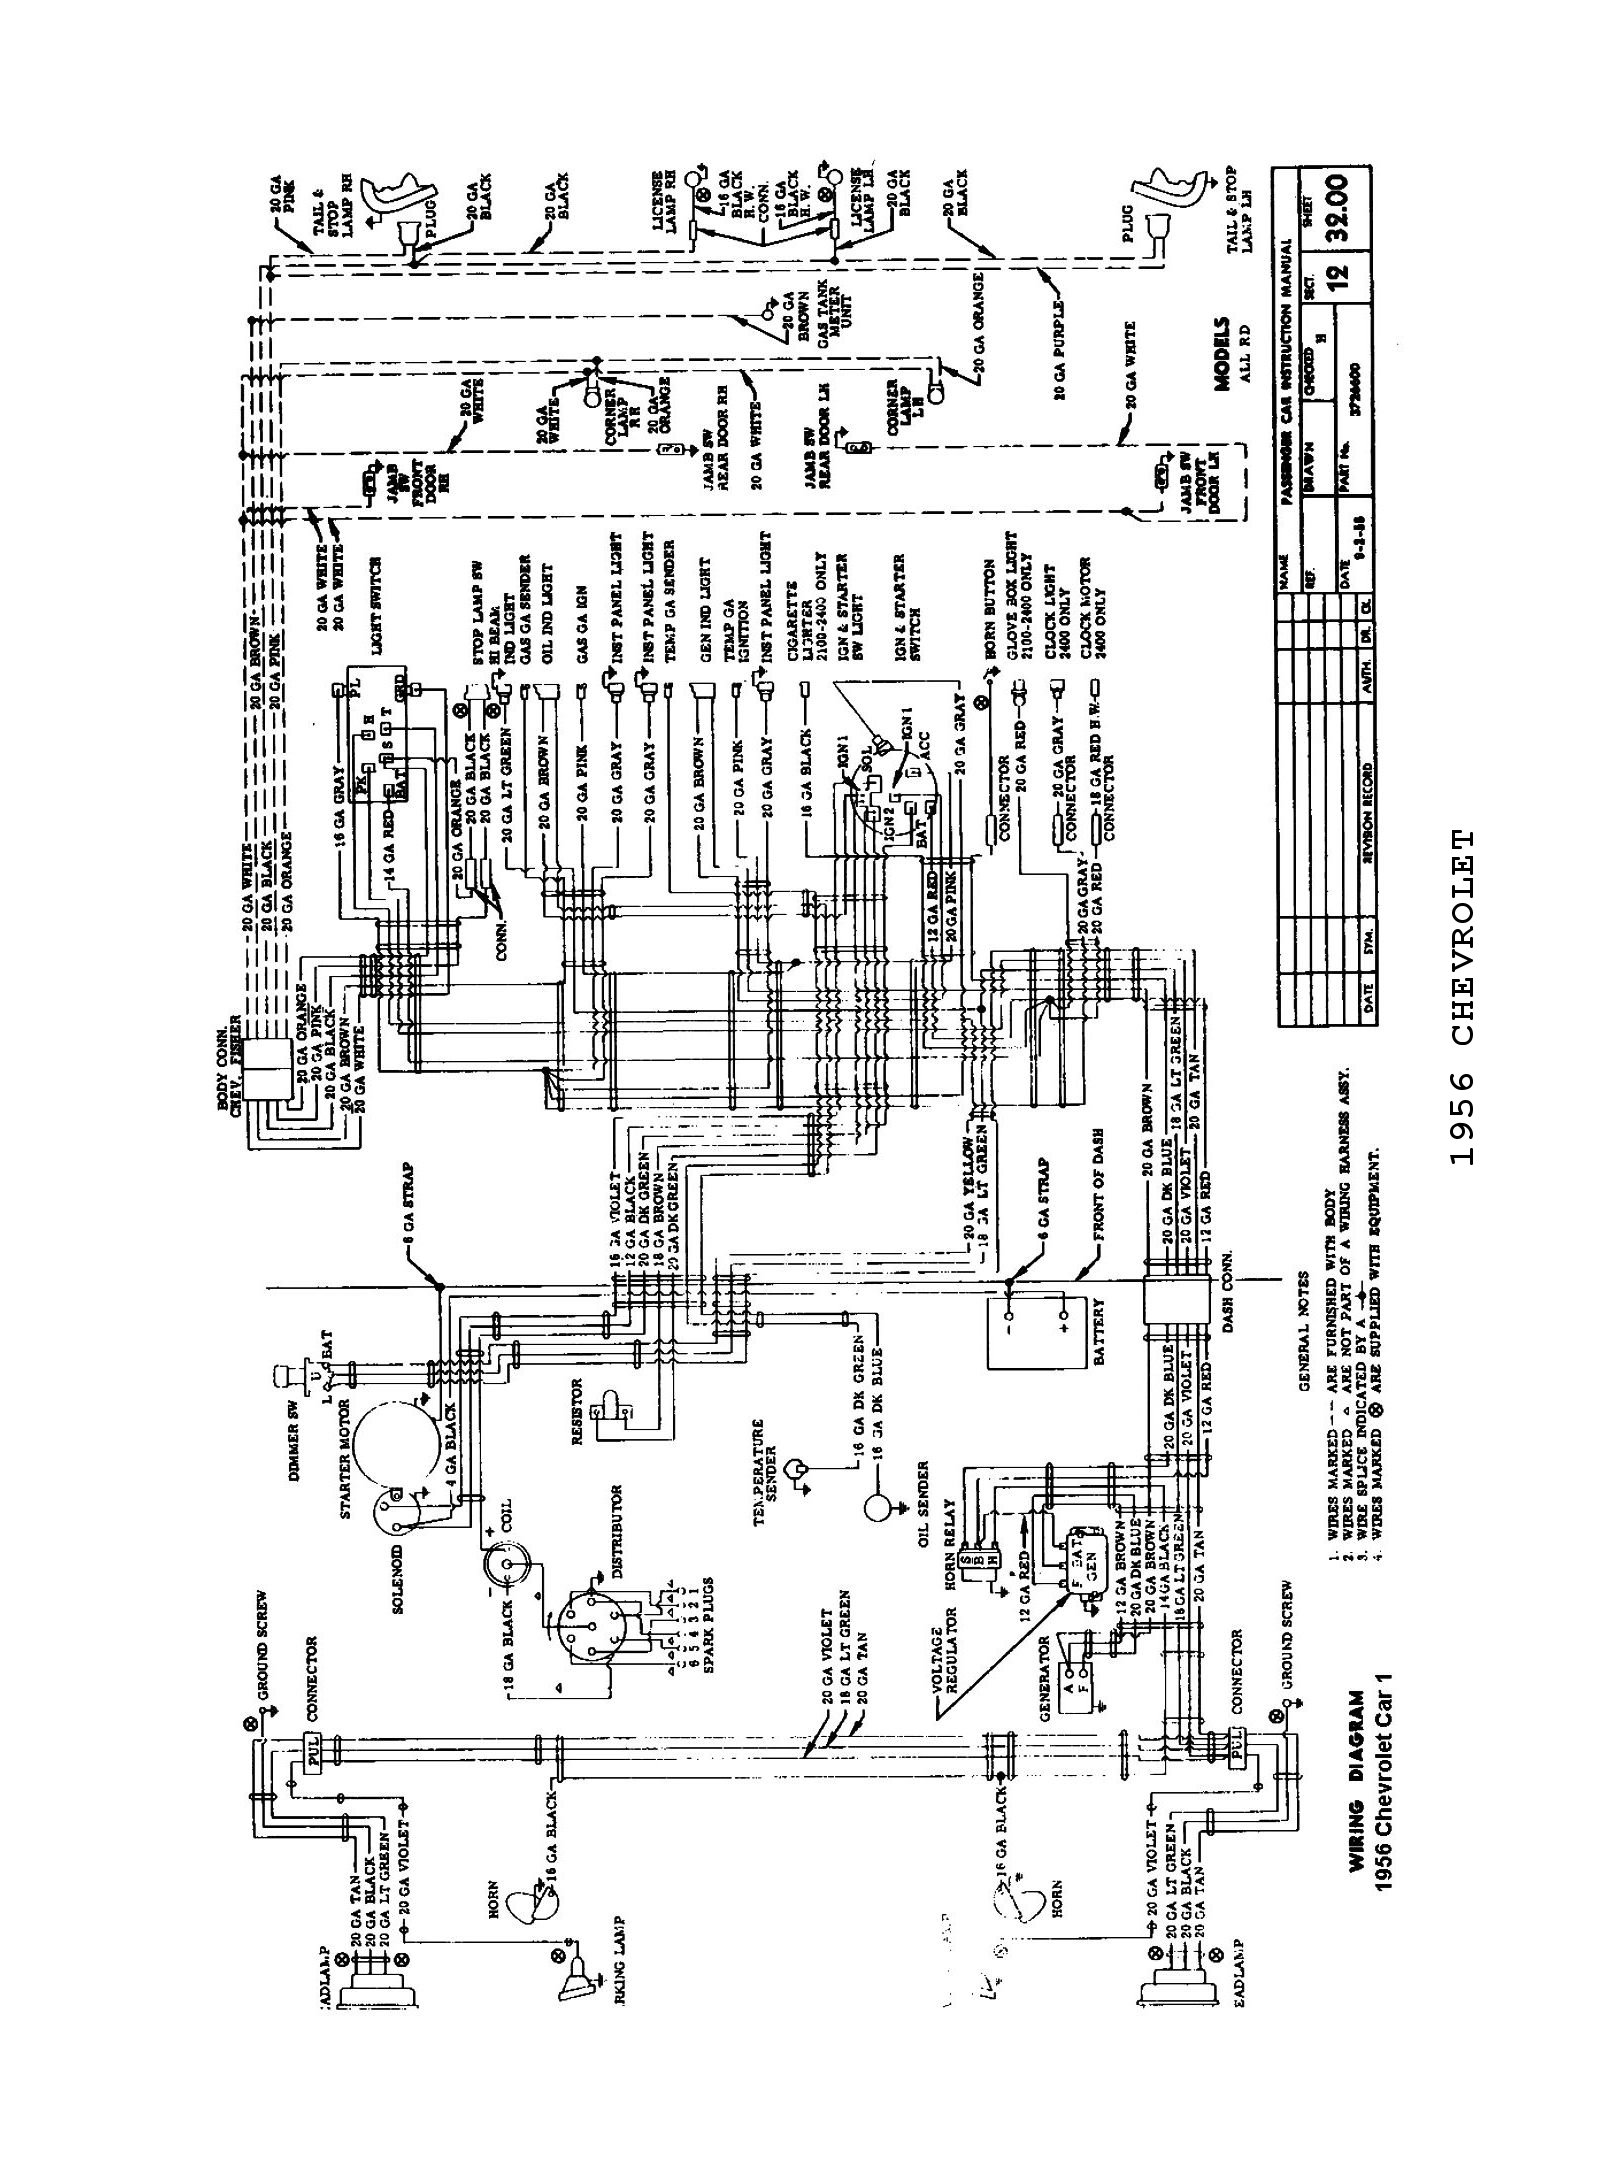 56car1 chevy wiring diagrams 1957 chevy headlight switch wiring diagram at et-consult.org